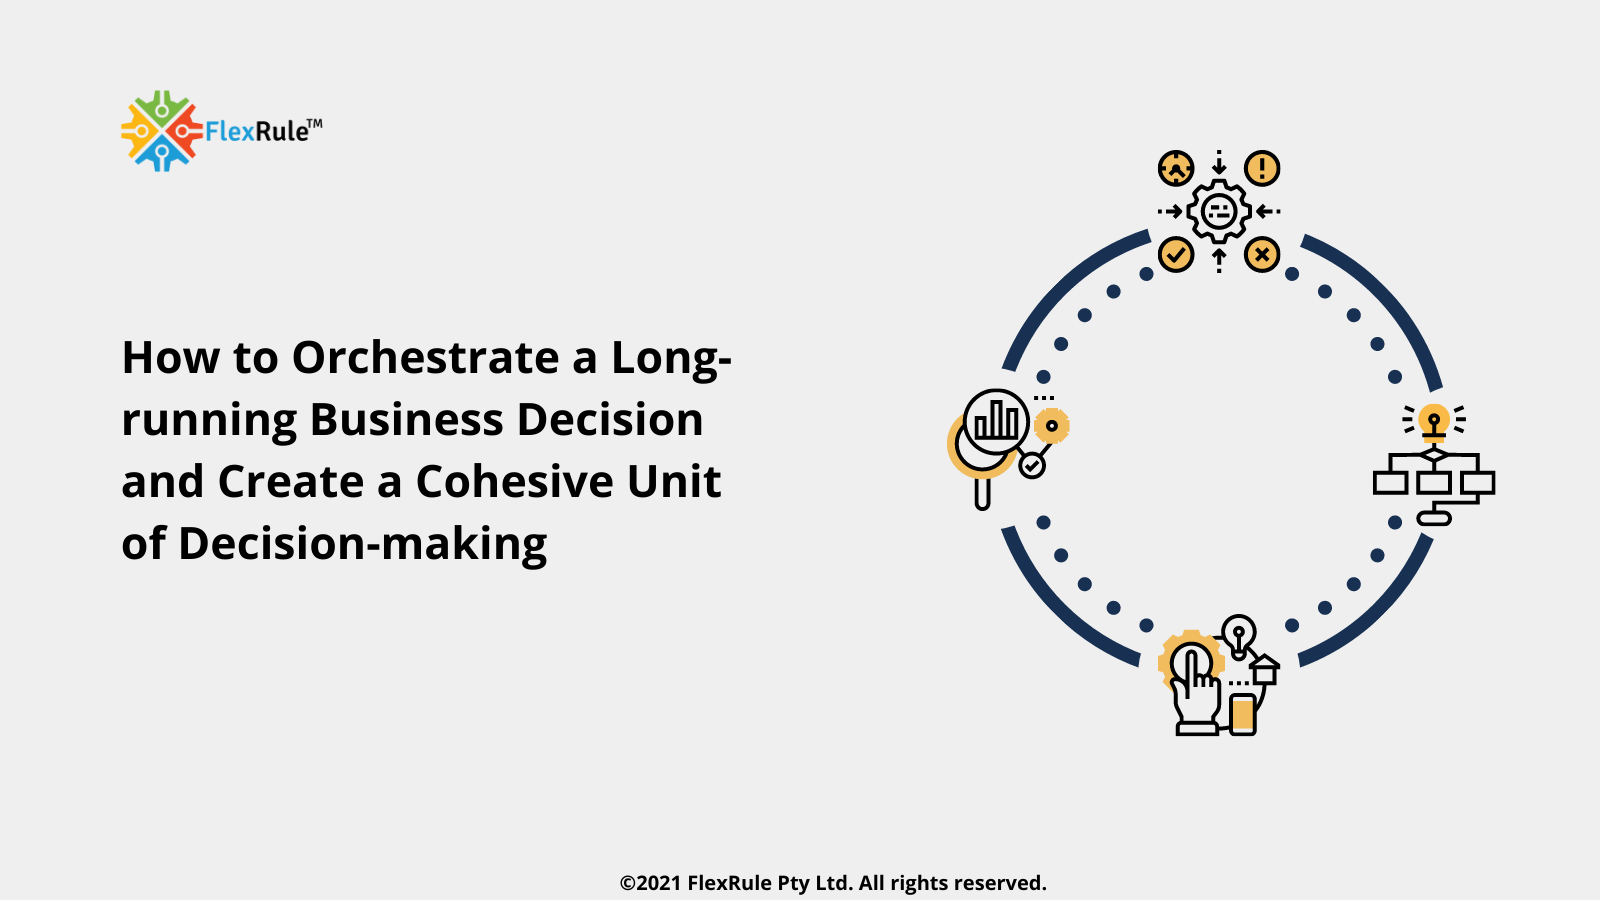 What is Long-running Decisioning?